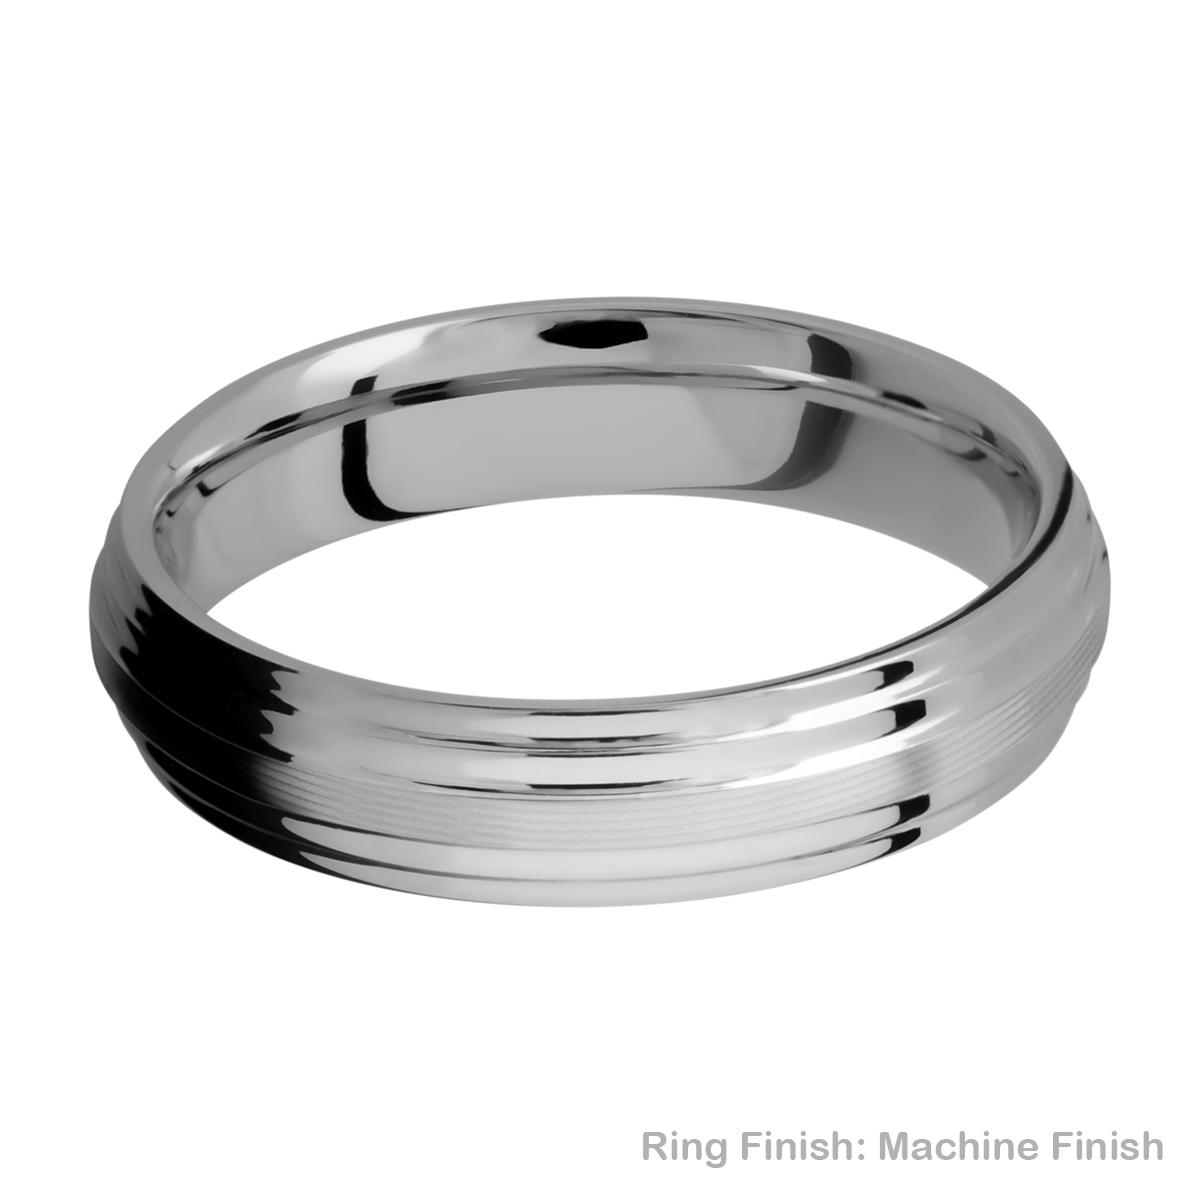 Lashbrook 5F2S Titanium Wedding Ring or Band Alternative View 15